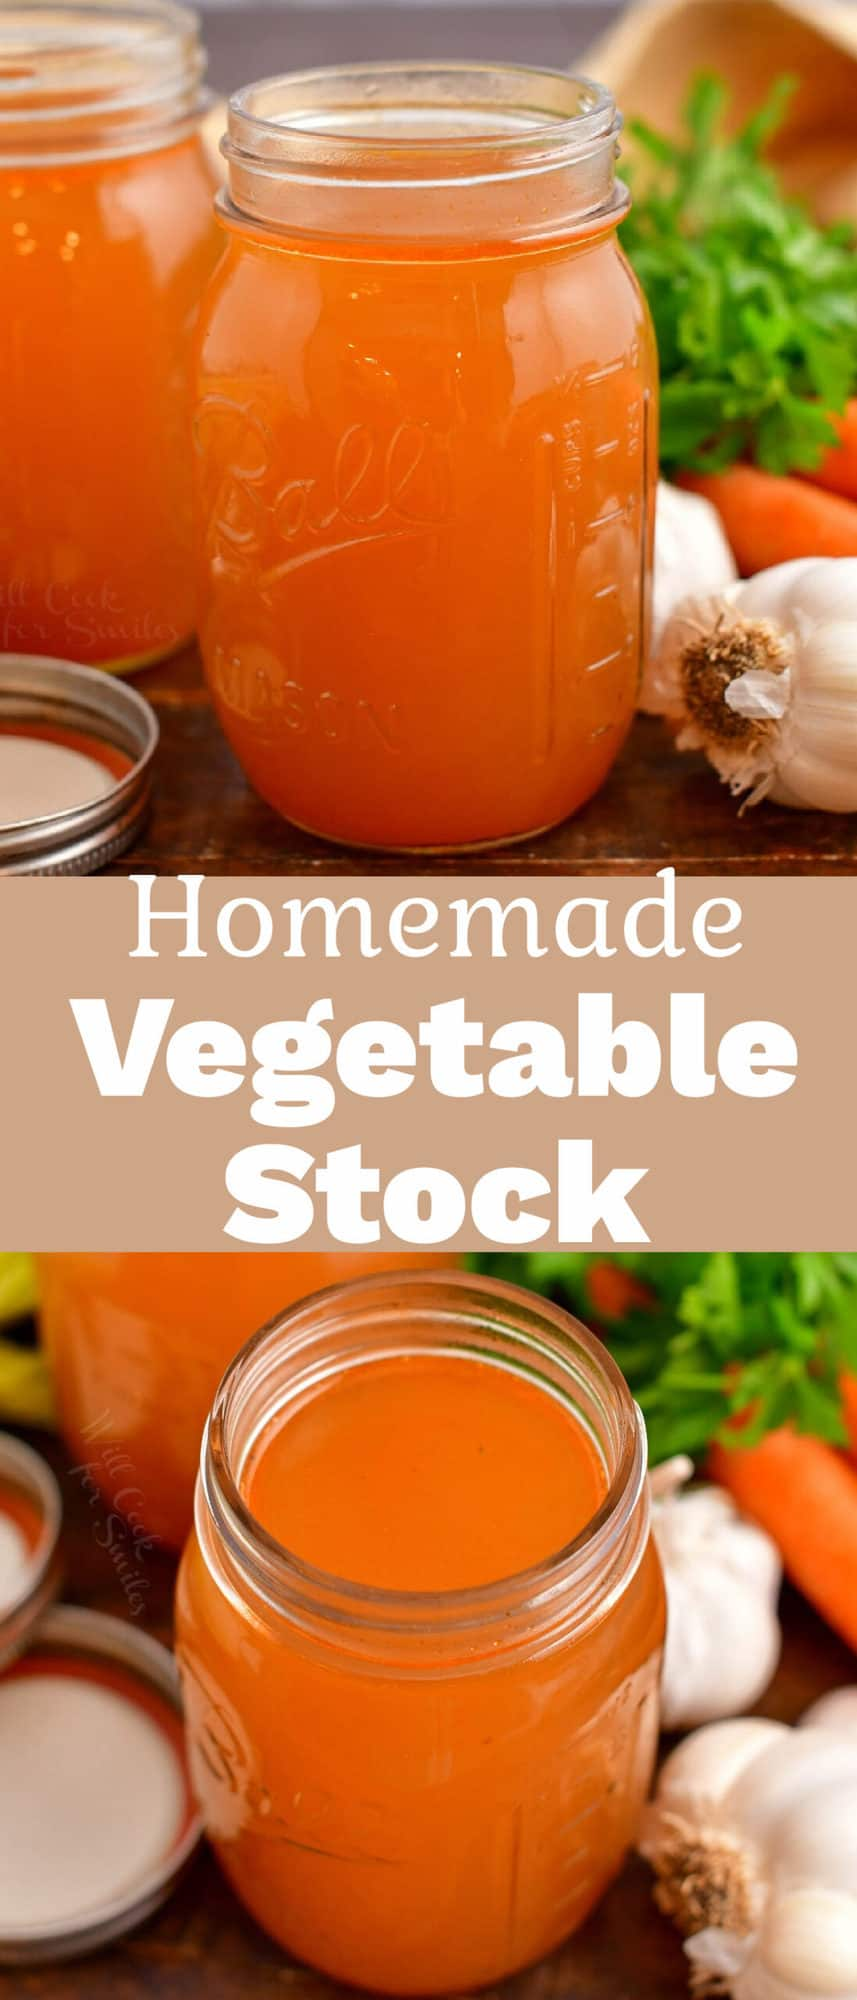 titled photo collage (and shown): Homemade Vegetable Stock